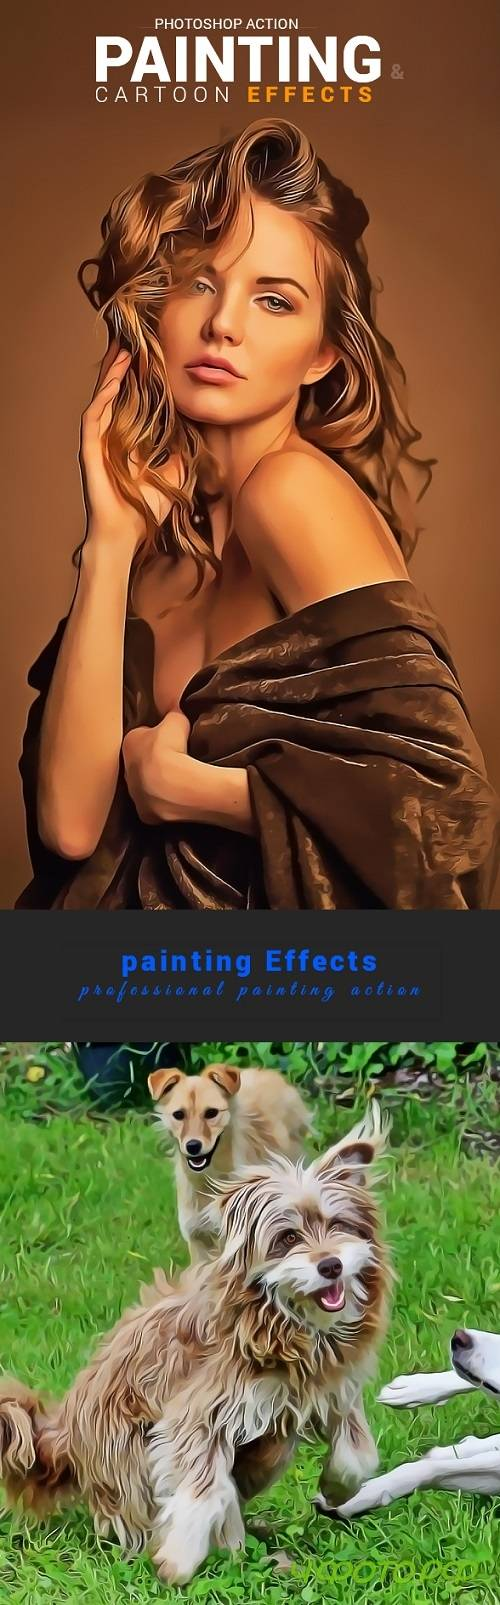 Painting & Cartoon Effects 20865260